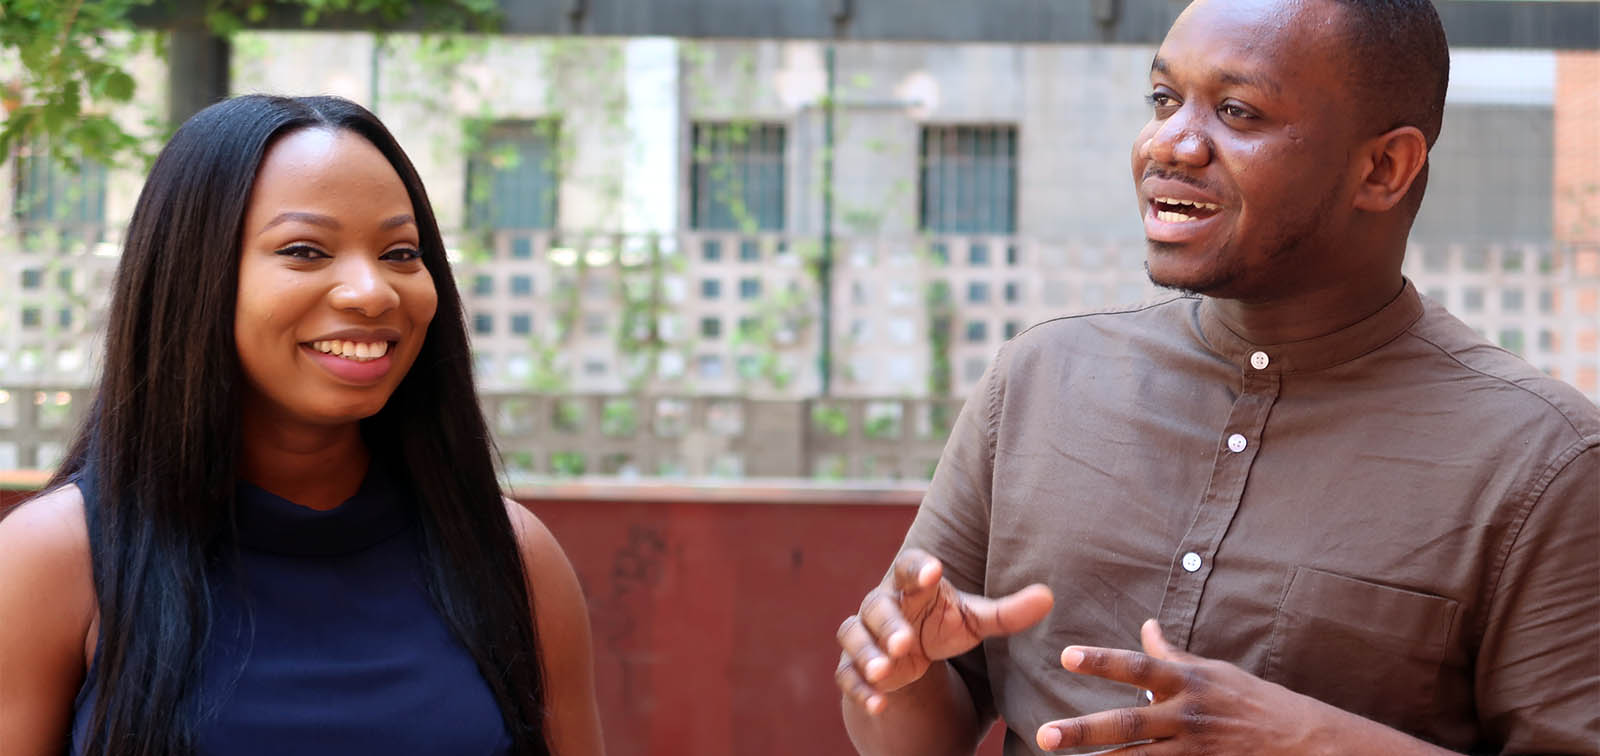 Daniel Kwakye and Ifeyinwa Martins received a grant to pursue the ISGlobal-UB Master of Global Health and, on this video, they share their views and experience